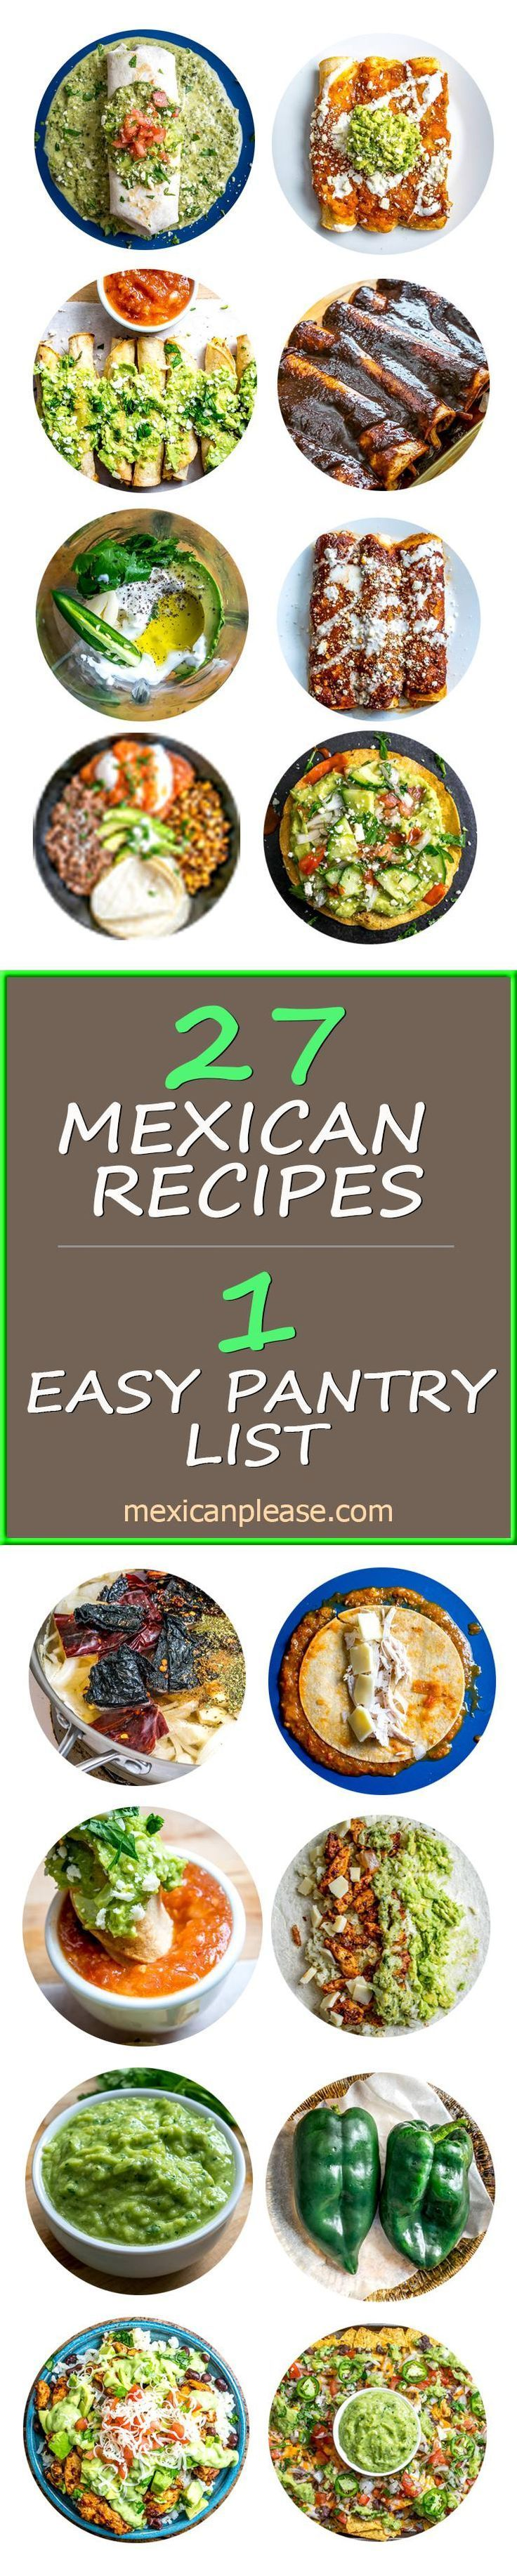 27 authentic mexican food recipes all from a simple pantry list 27 authentic mexican food recipes all from a simple pantry list this free mexican cooking survival guide is the quickest and easiest way to get yo forumfinder Images